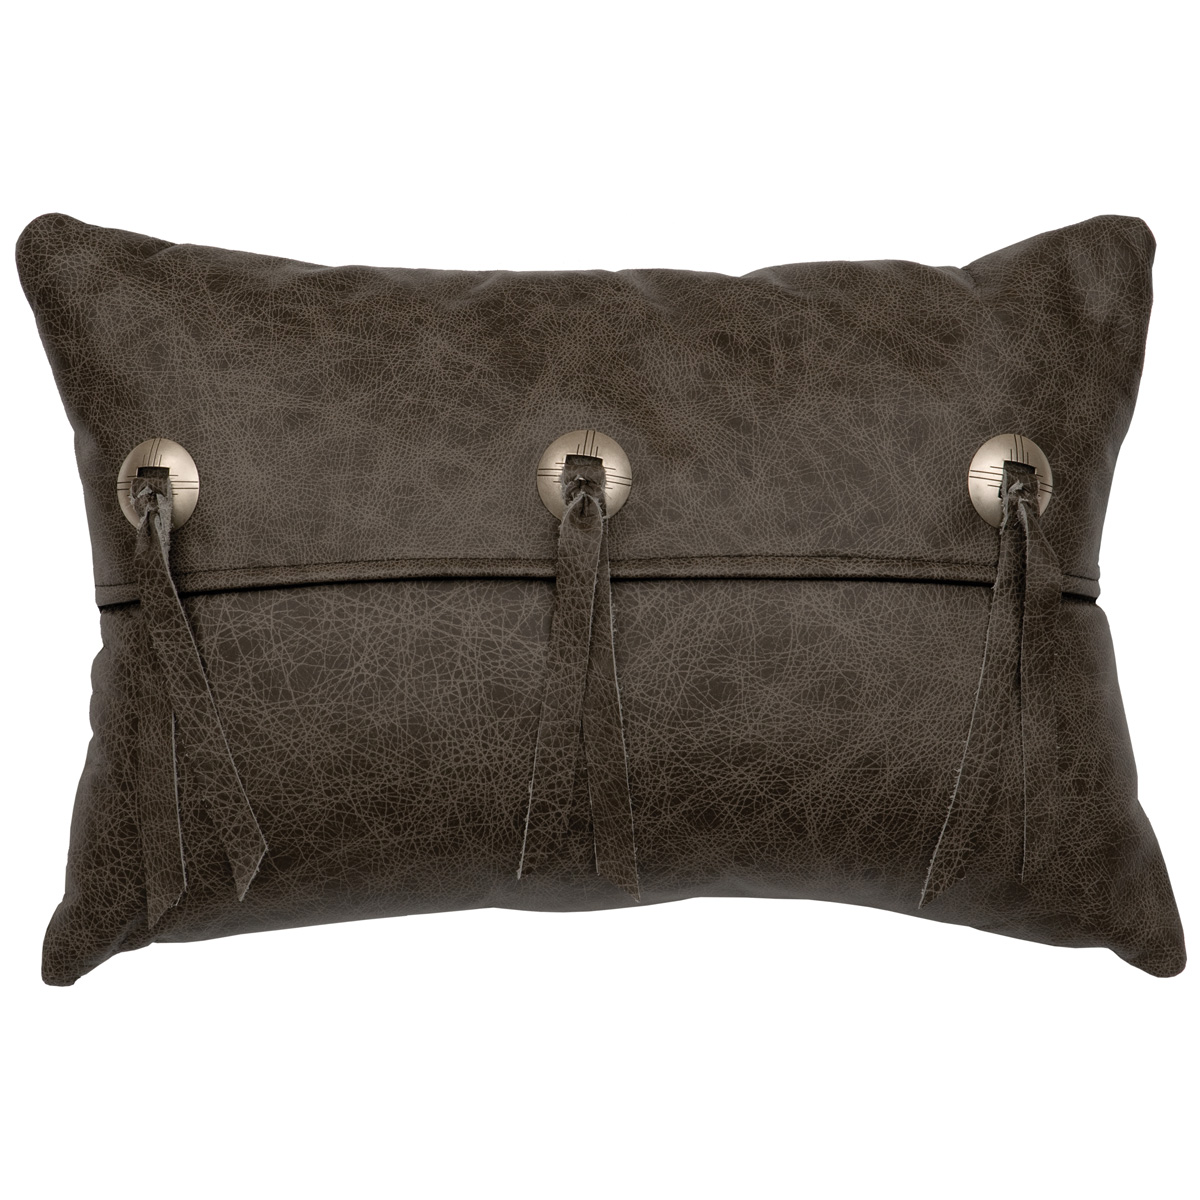 Black Forest Decor Saloon gray leather flap and concho pi...